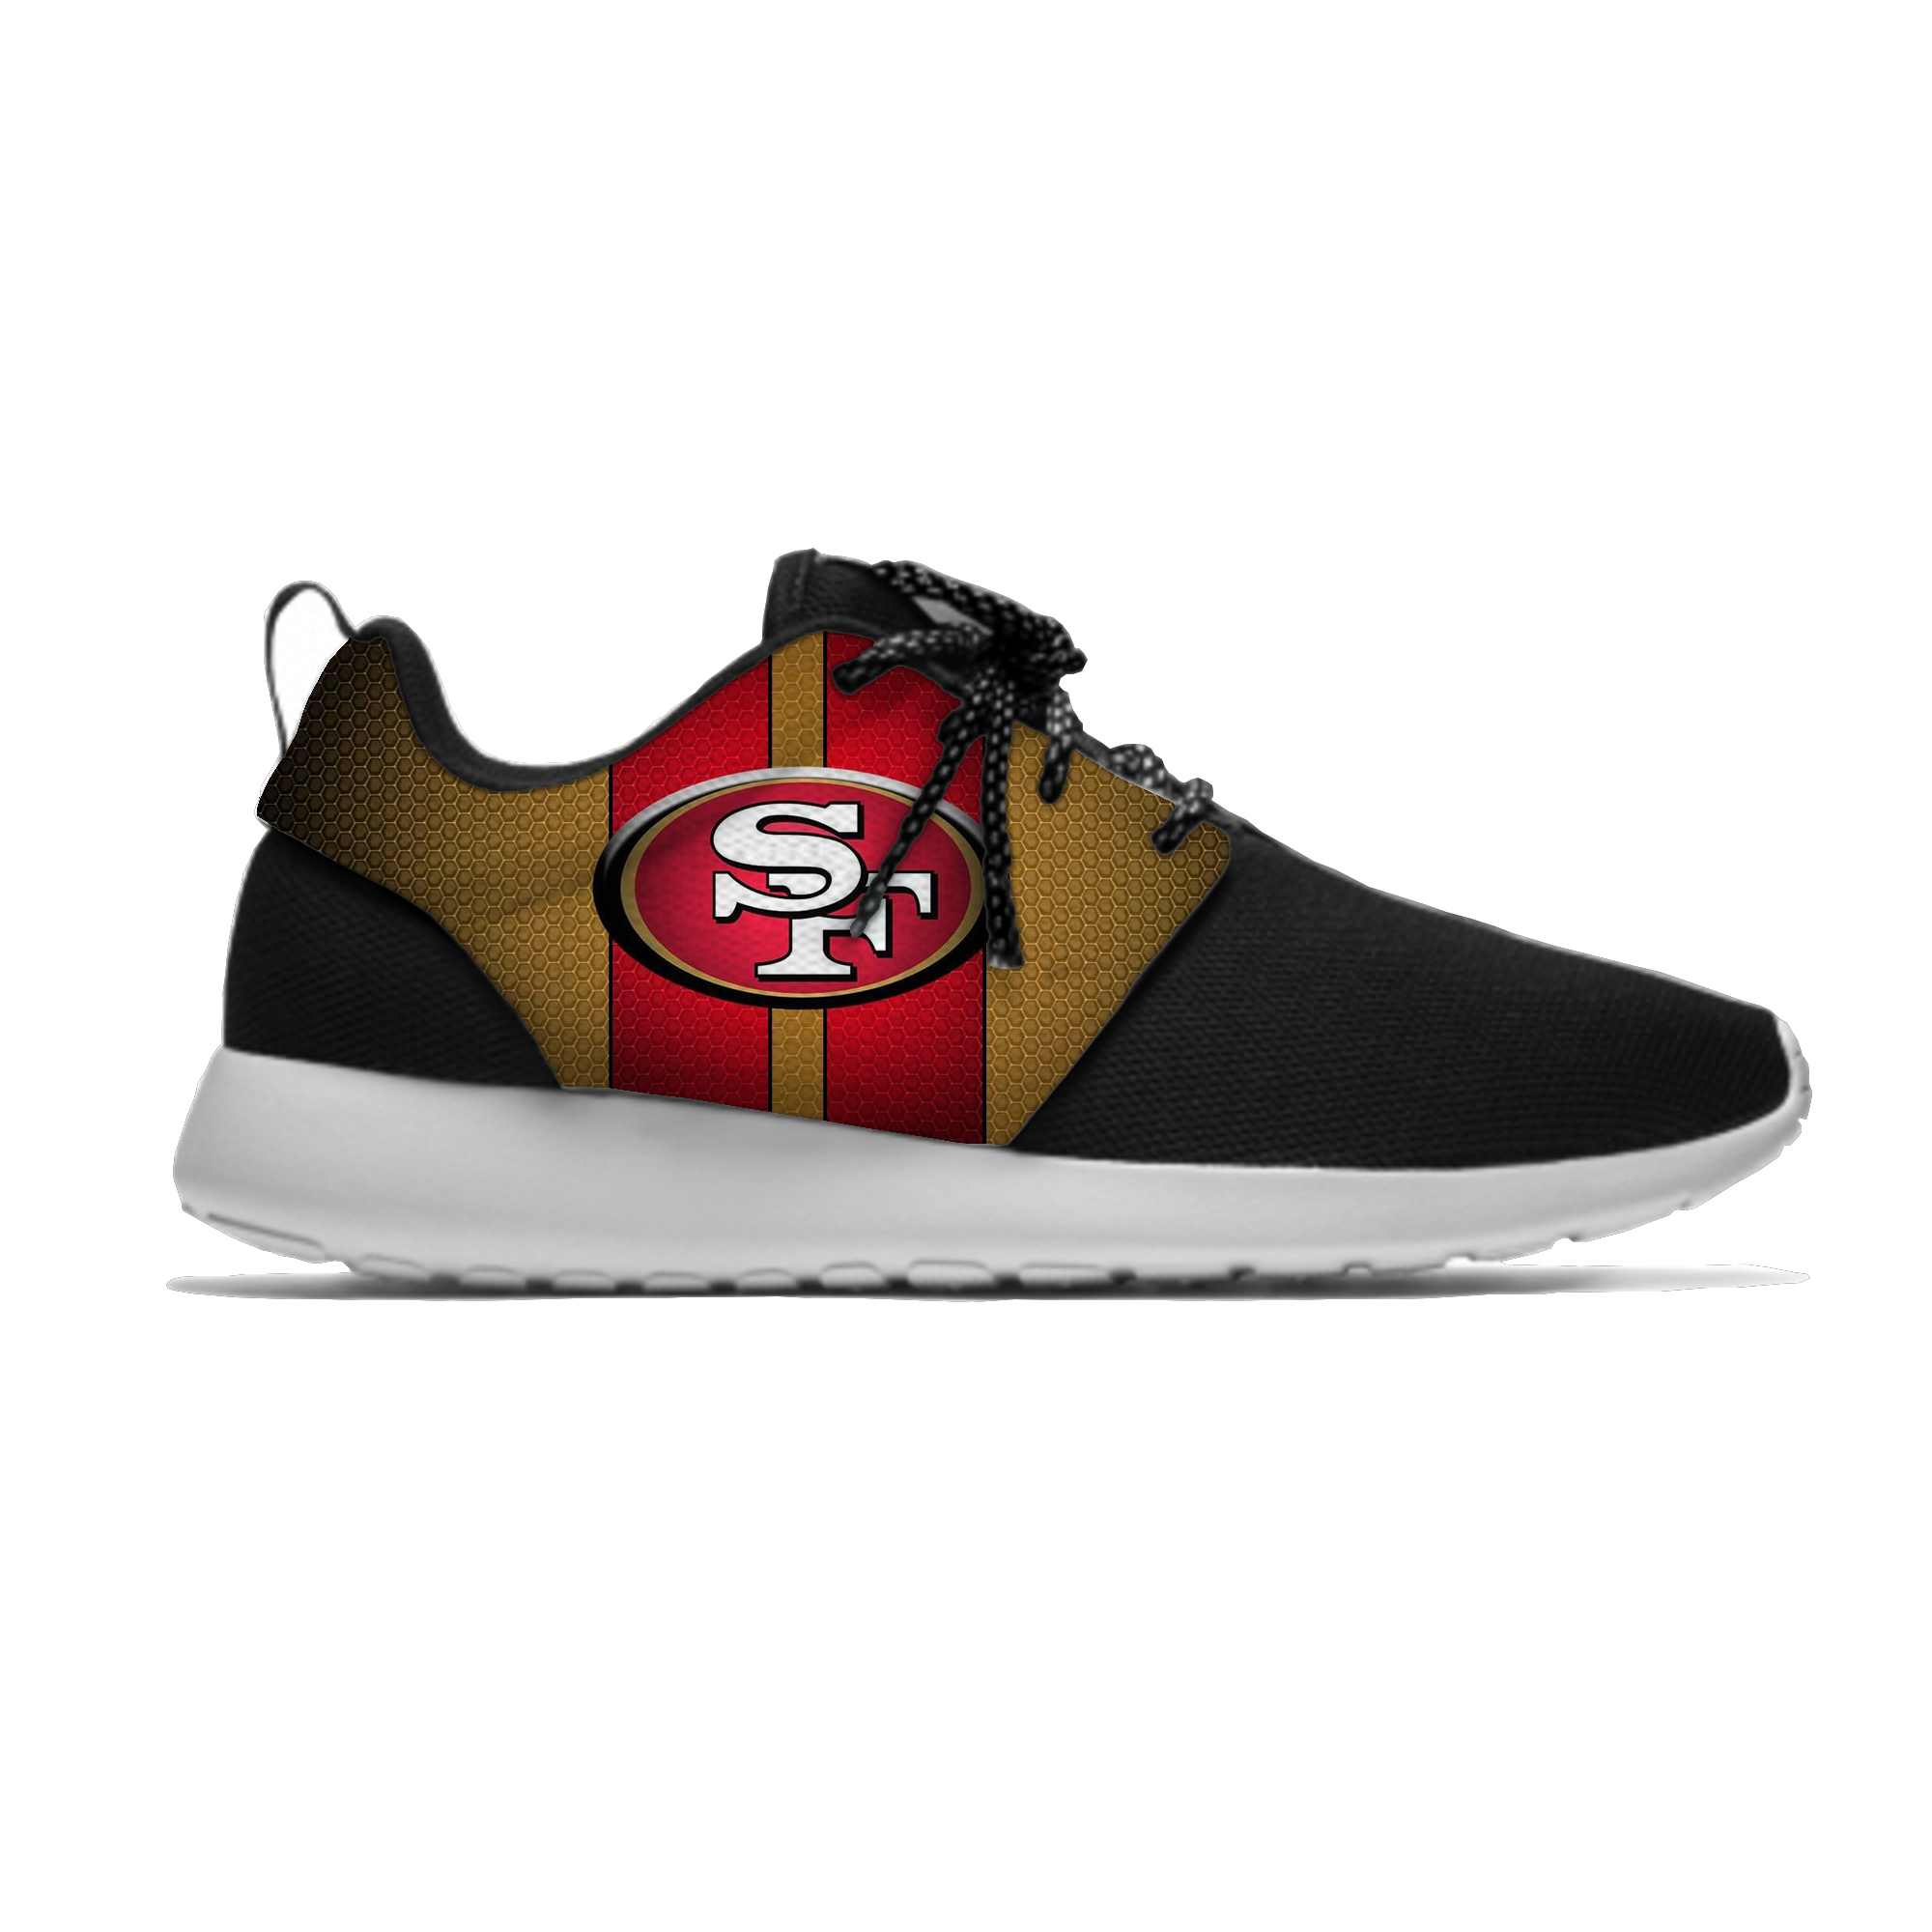 49ers Breathable Casual Sneakers Men/Women Lightweight Sport Shoes San Francisco Football Fans Running Meshy Shoes